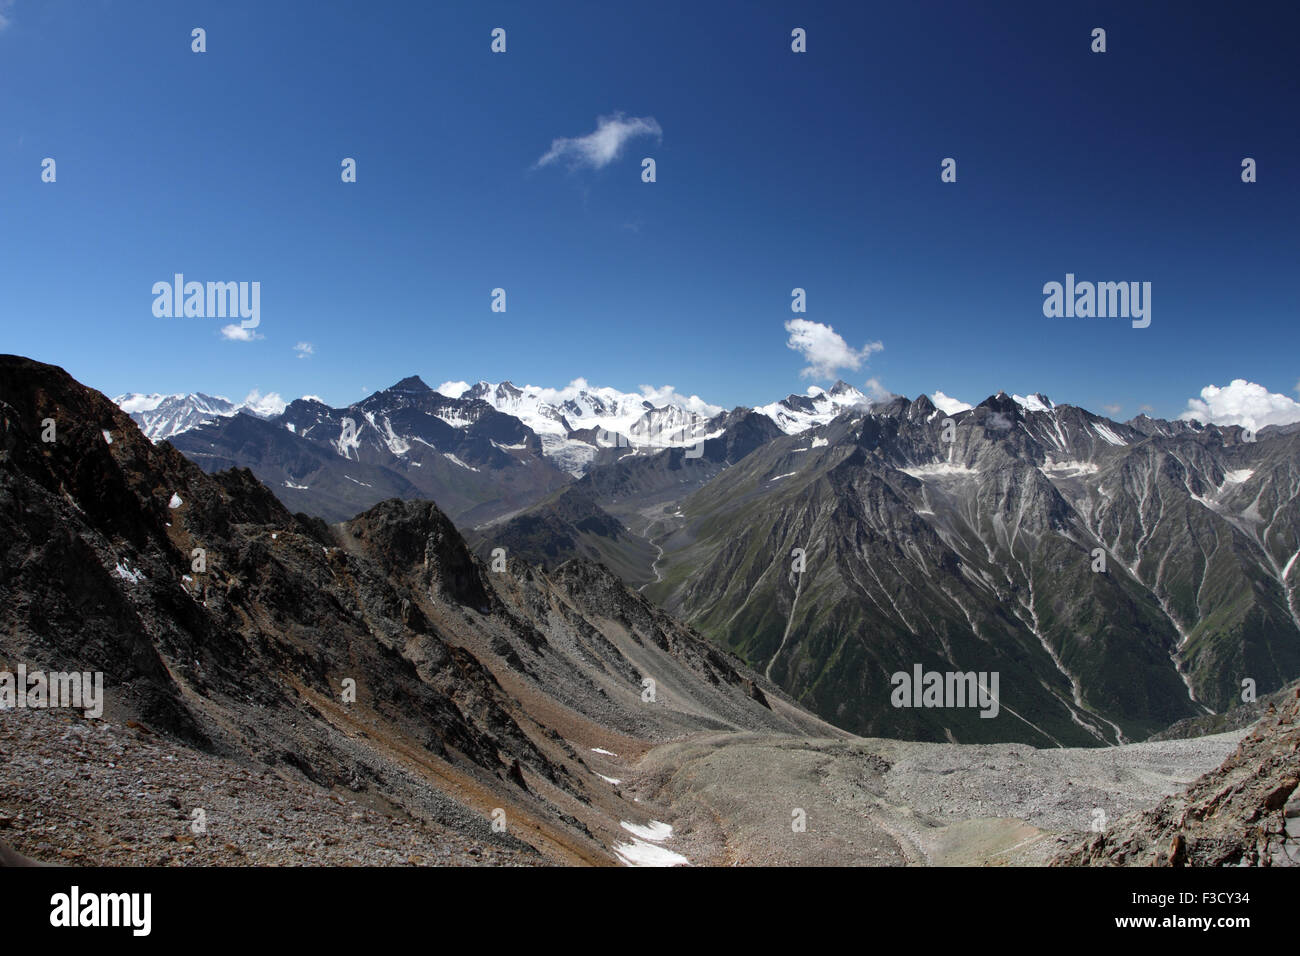 View from Charang La Pass in Himachal Pradesh in India on the route of Kinner Kailash Parikrama. - Stock Image